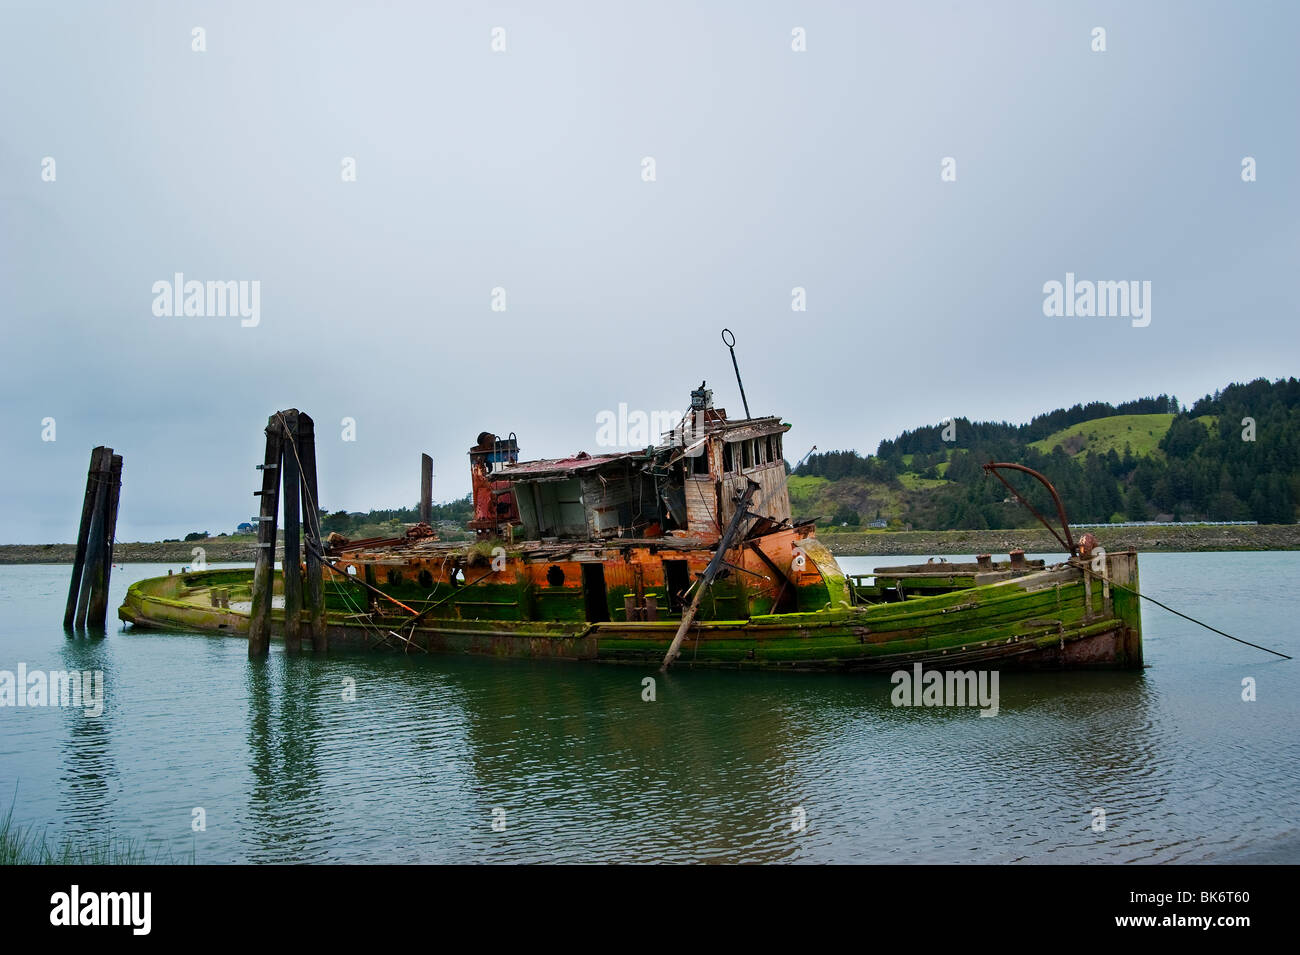 Old weathered boat anchored in a bay - Stock Image